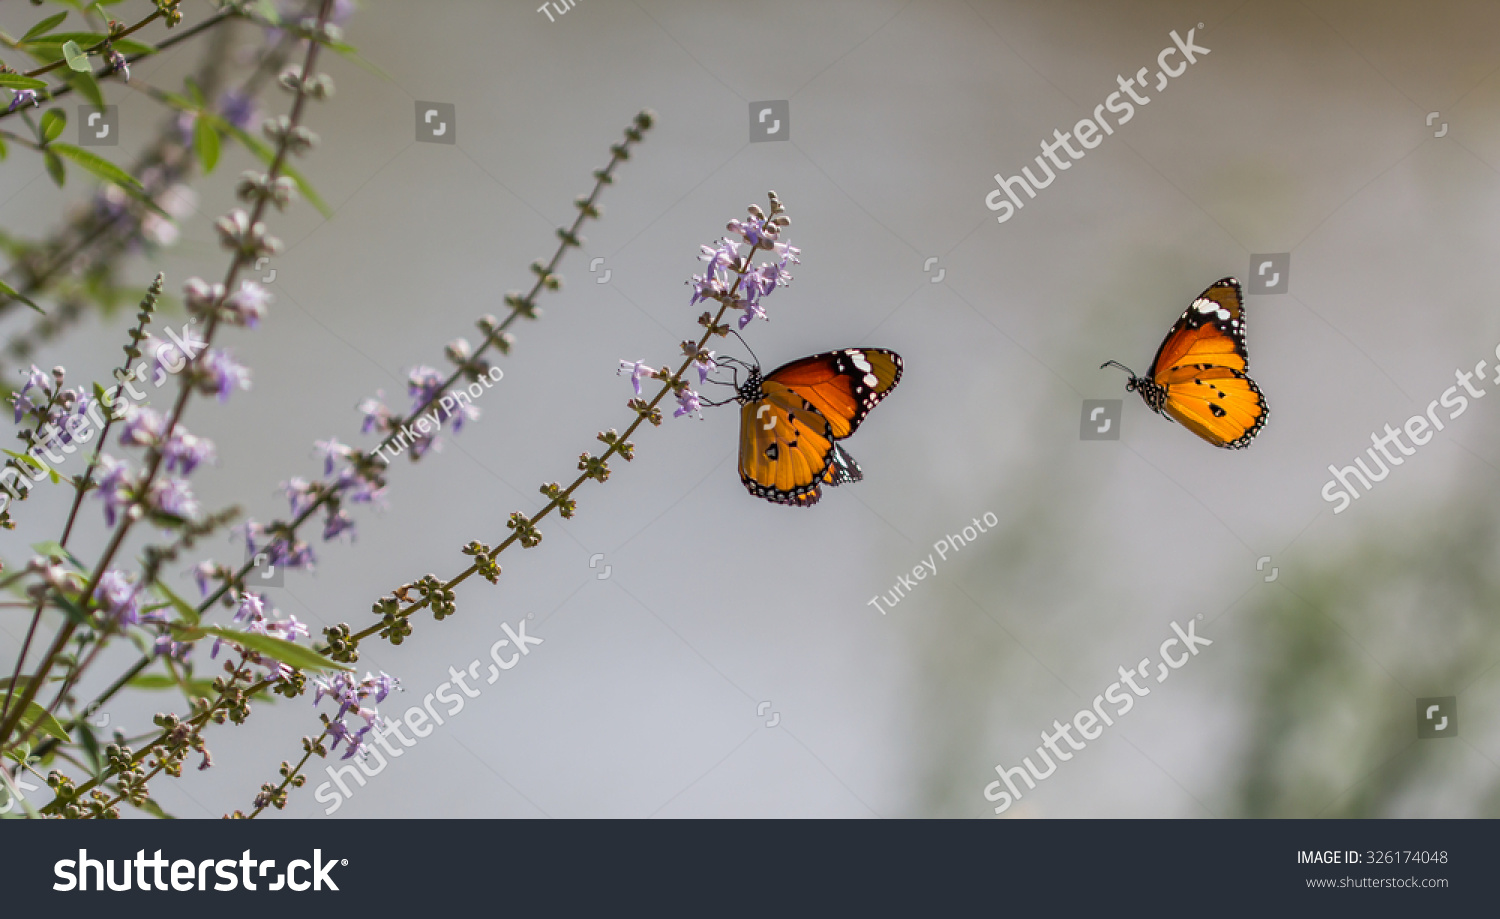 stock-photo-two-beautiful-butterfly-port